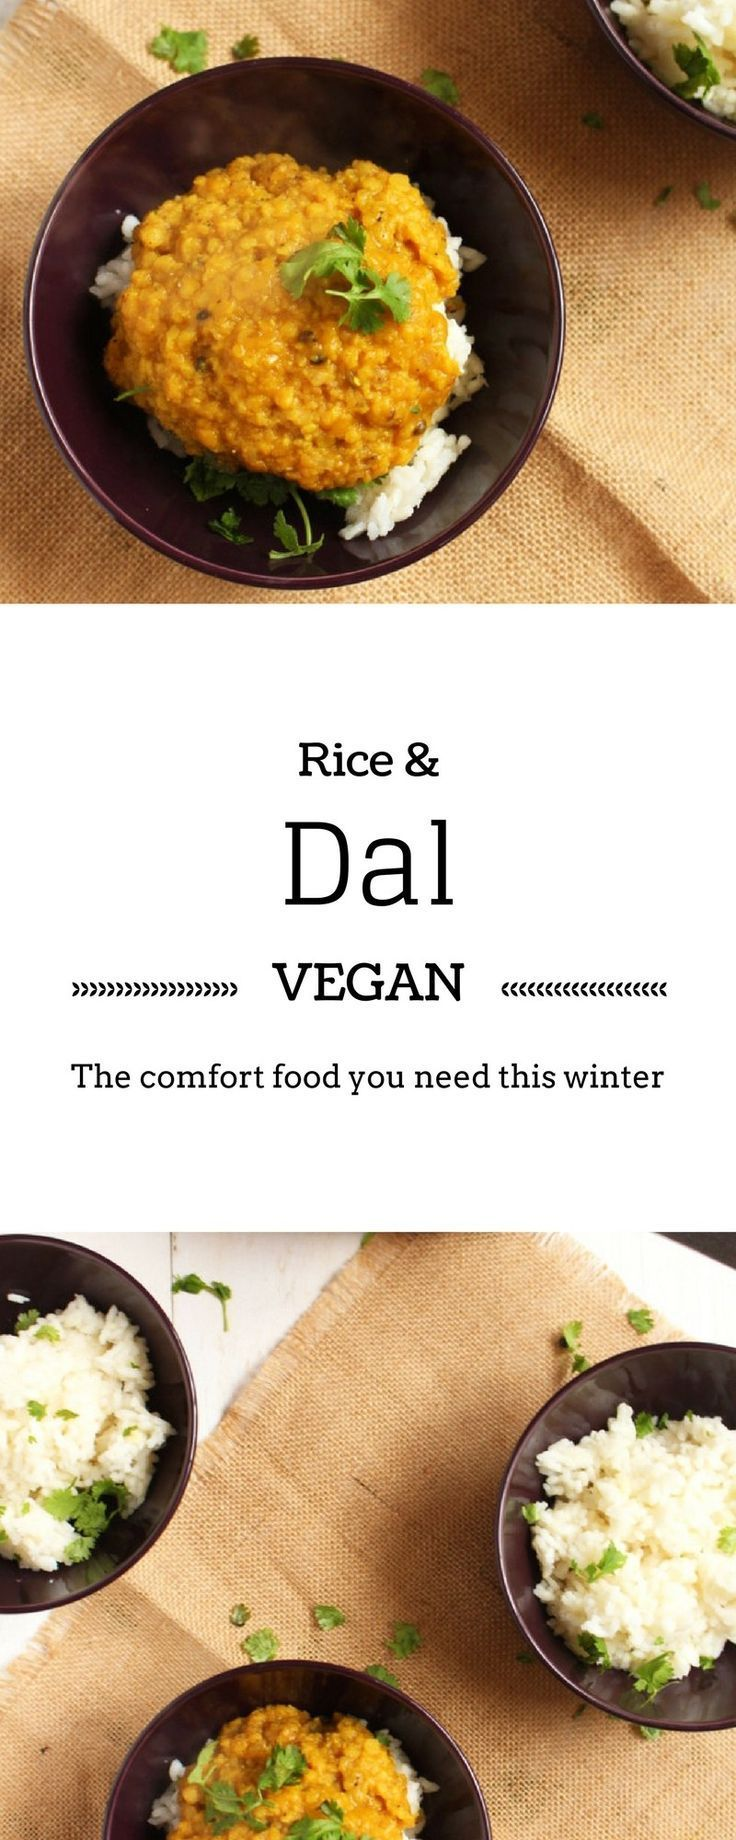 Vegan Rice and Dal - This is what your soul needs, I promise. It's an easy vegan recipe that'll warm you this winter. That's the BrokeFoodies guarantee.